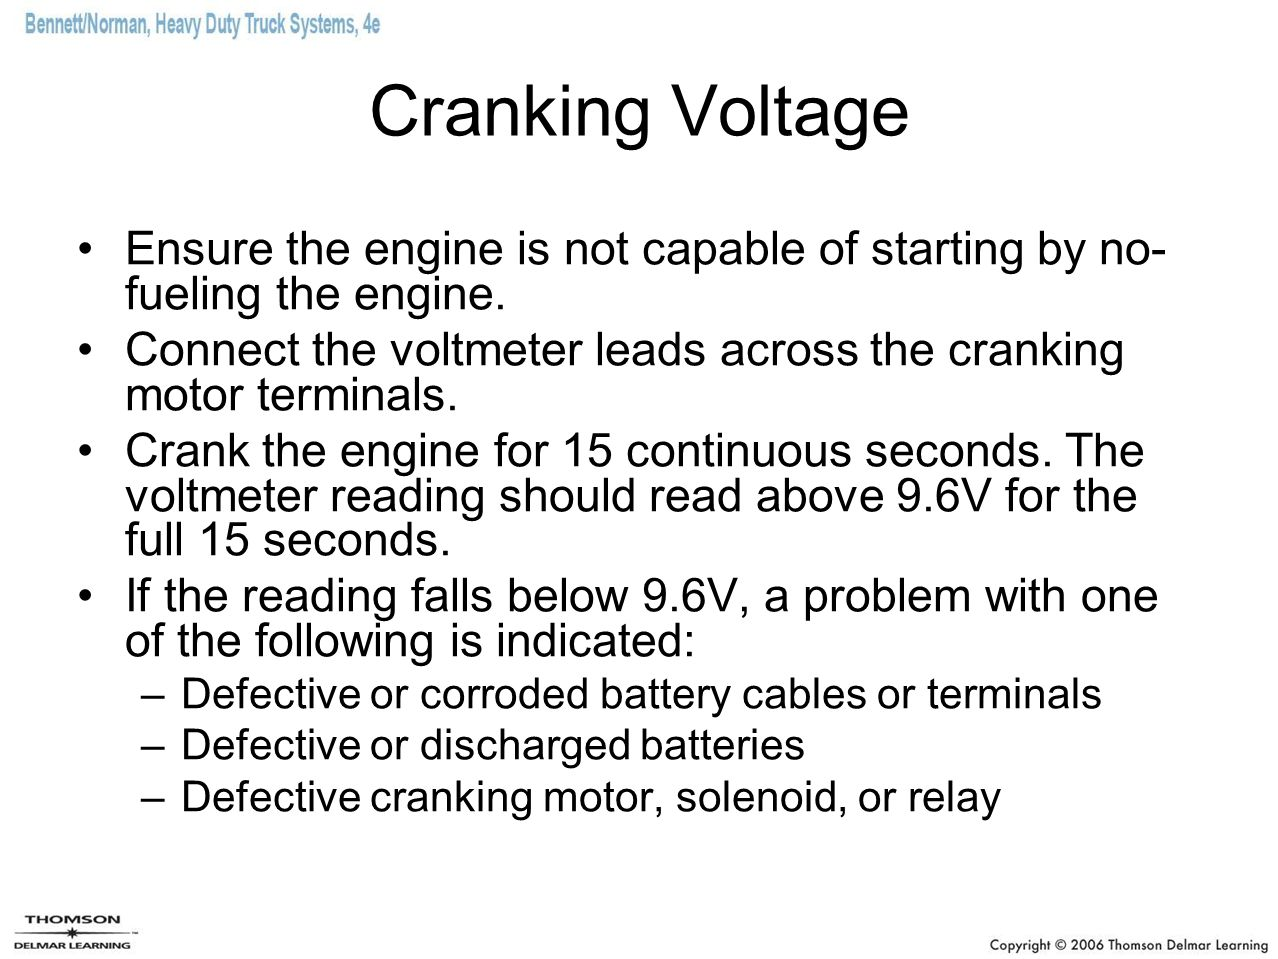 Cranking Voltage Ensure the engine is not capable of starting by no- fueling the engine. Connect the voltmeter leads across the cranking motor termina